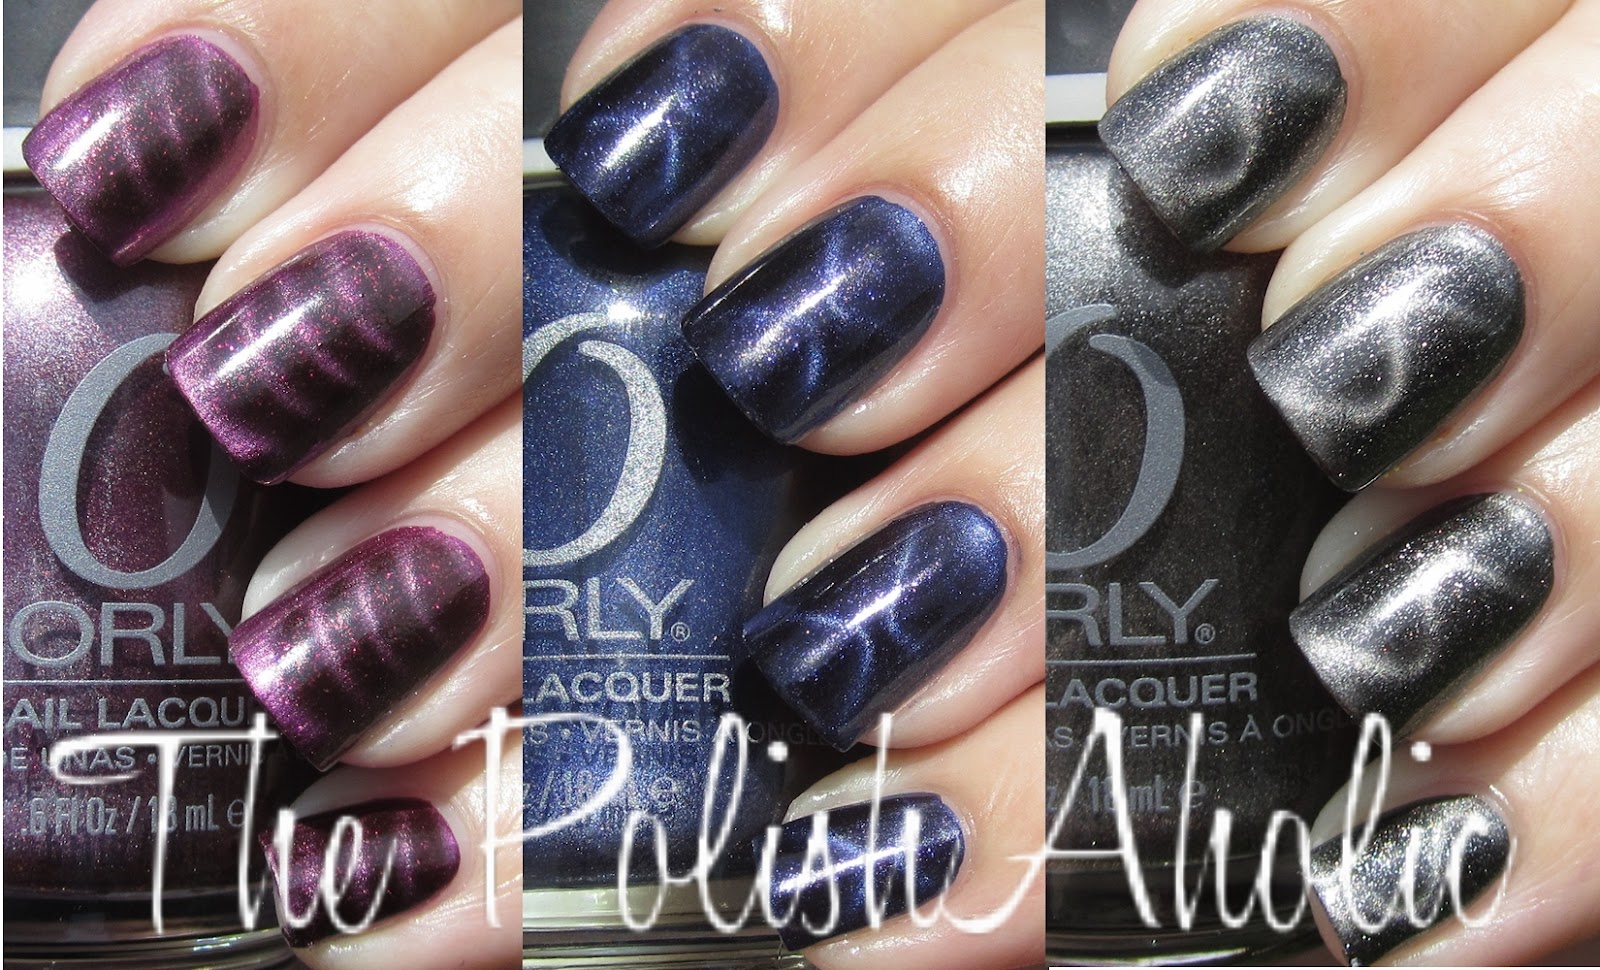 The PolishAholic: Orly Magnetic FX Collection Swatches